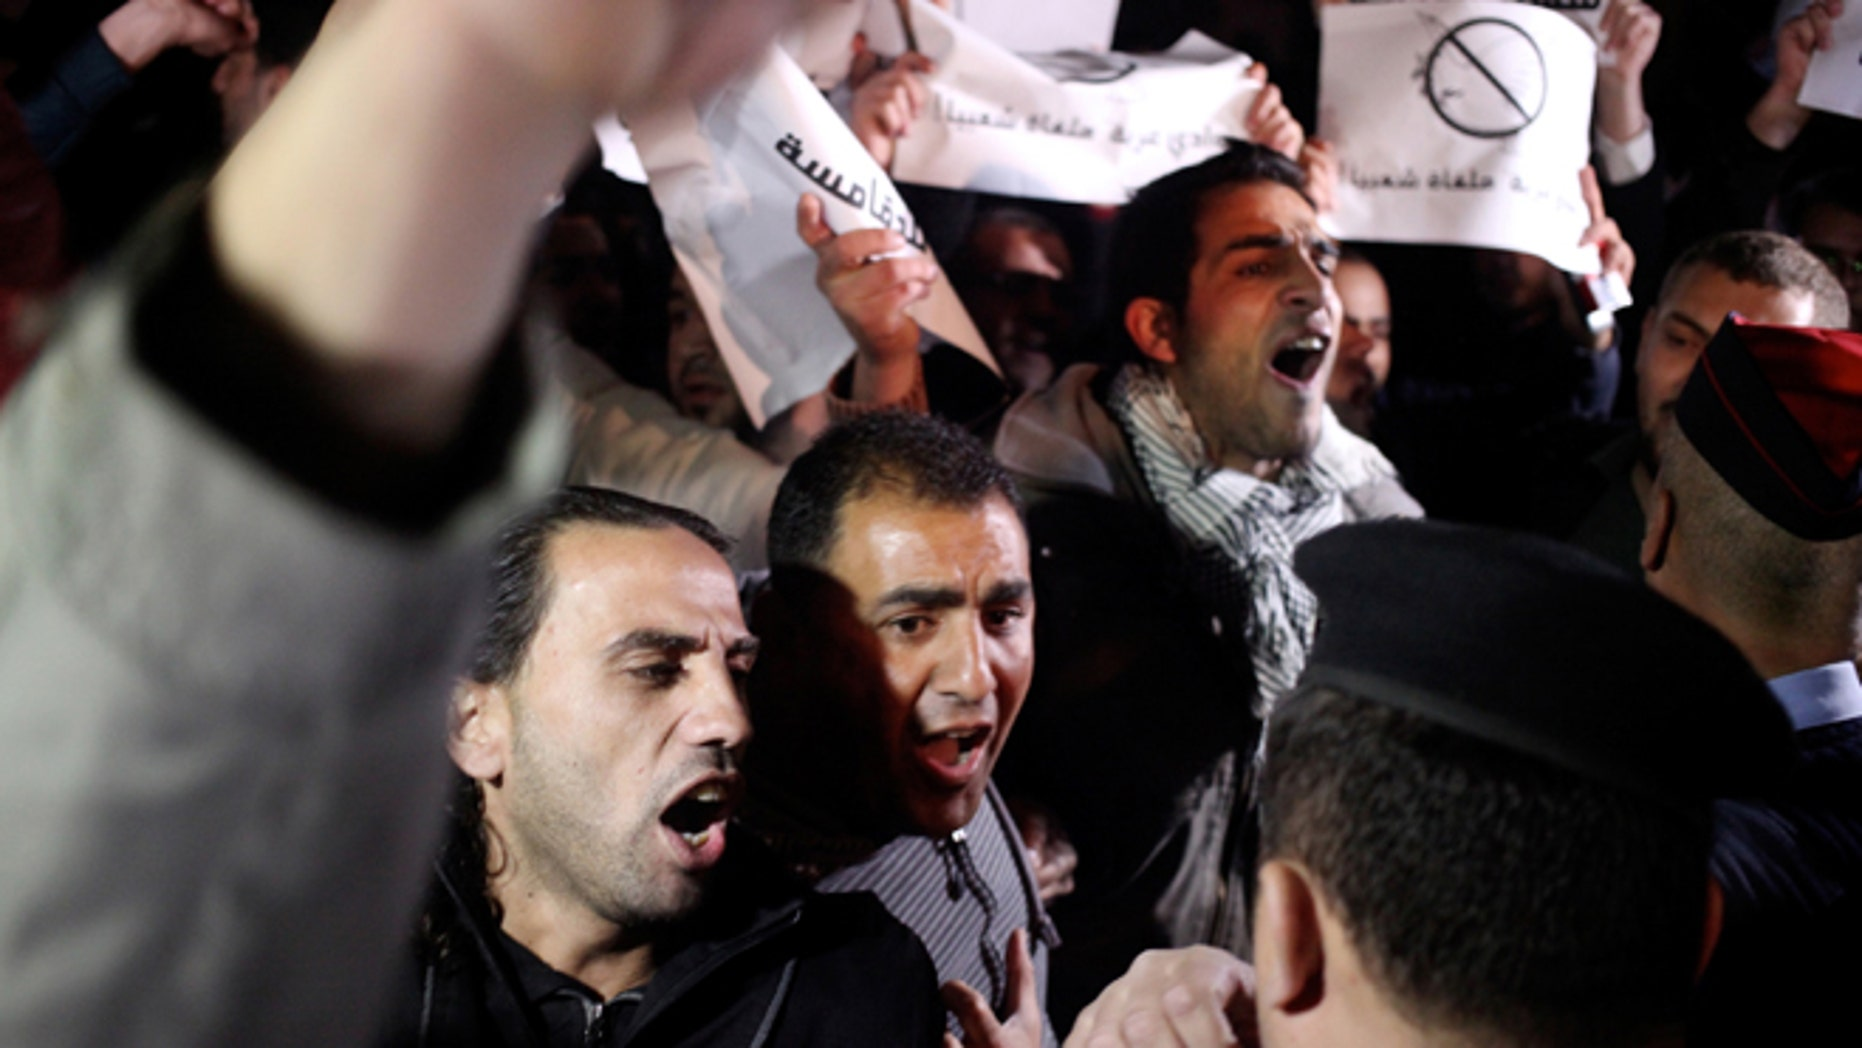 Mar. 10, 2014: Jordanian protesters shout slogans across the street from the Israeli embassy and demand the deportation of the Israeli ambassador after the killing of Jordanian judge Raed Zueter, 38, at Allenby crossing between Jordan and the West Bank, in Amman, Jordan.